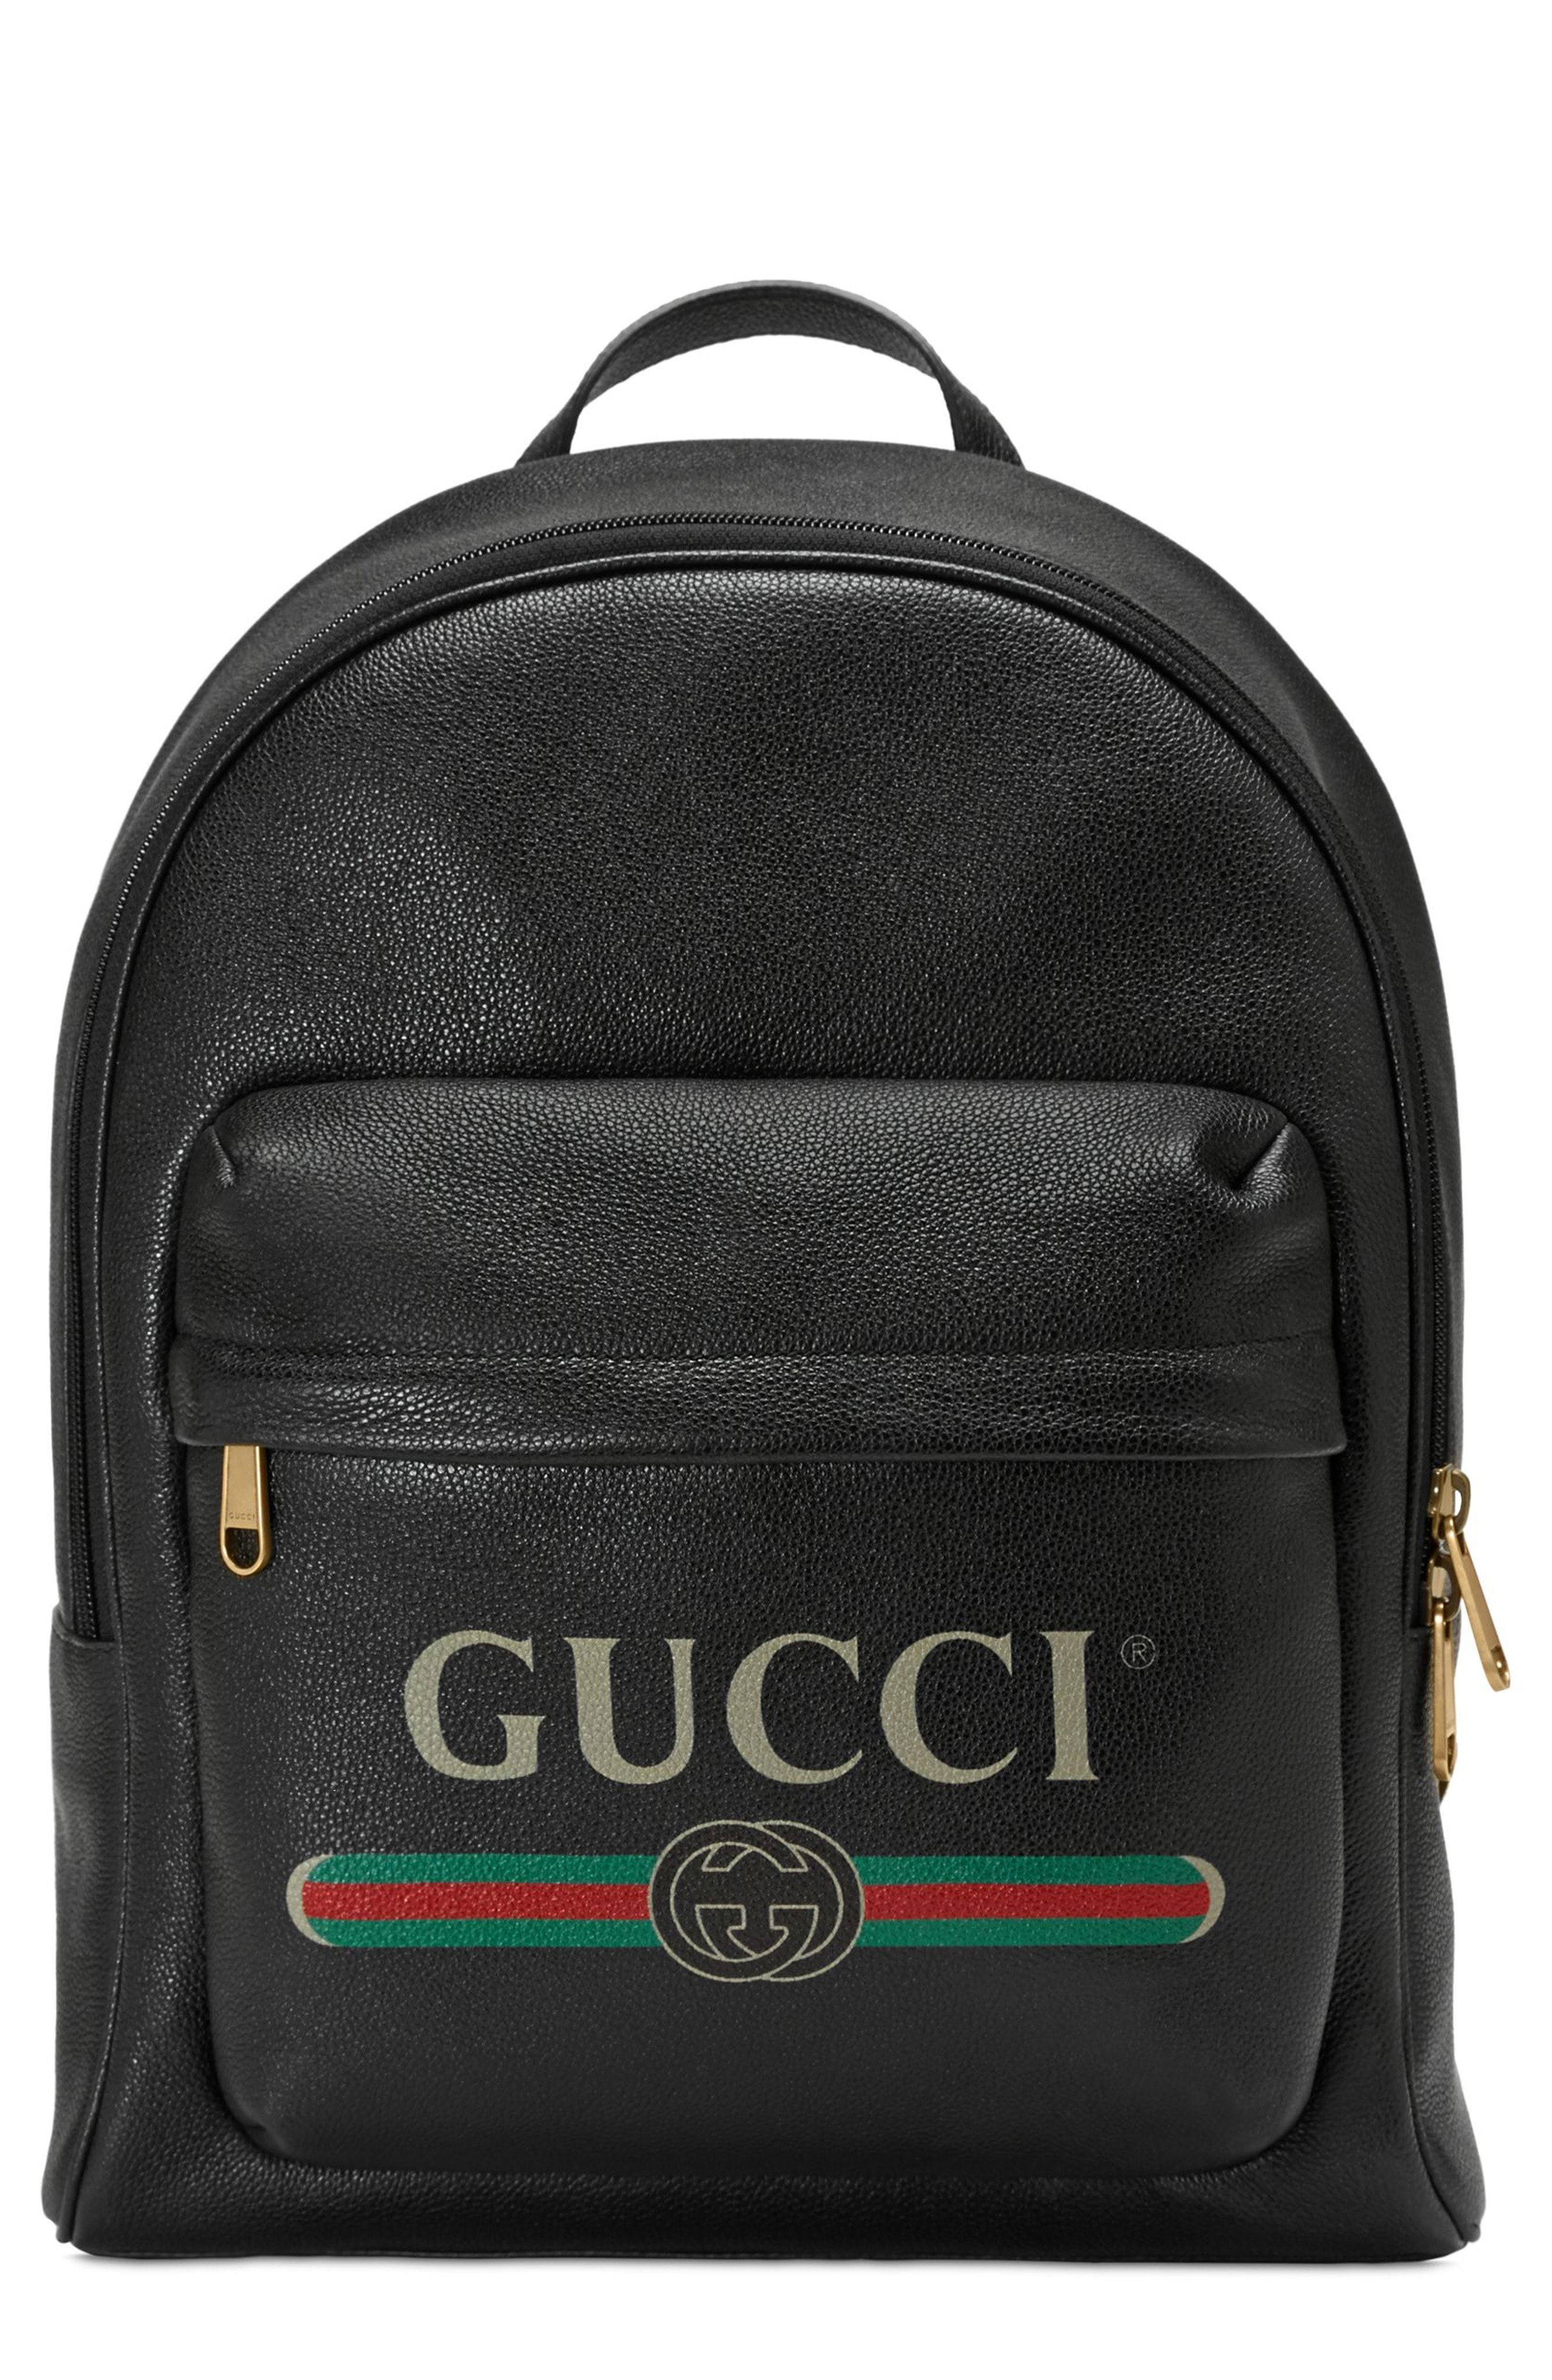 5b9a0c8d102 Gucci Logo Backpack available at  Nordstrom